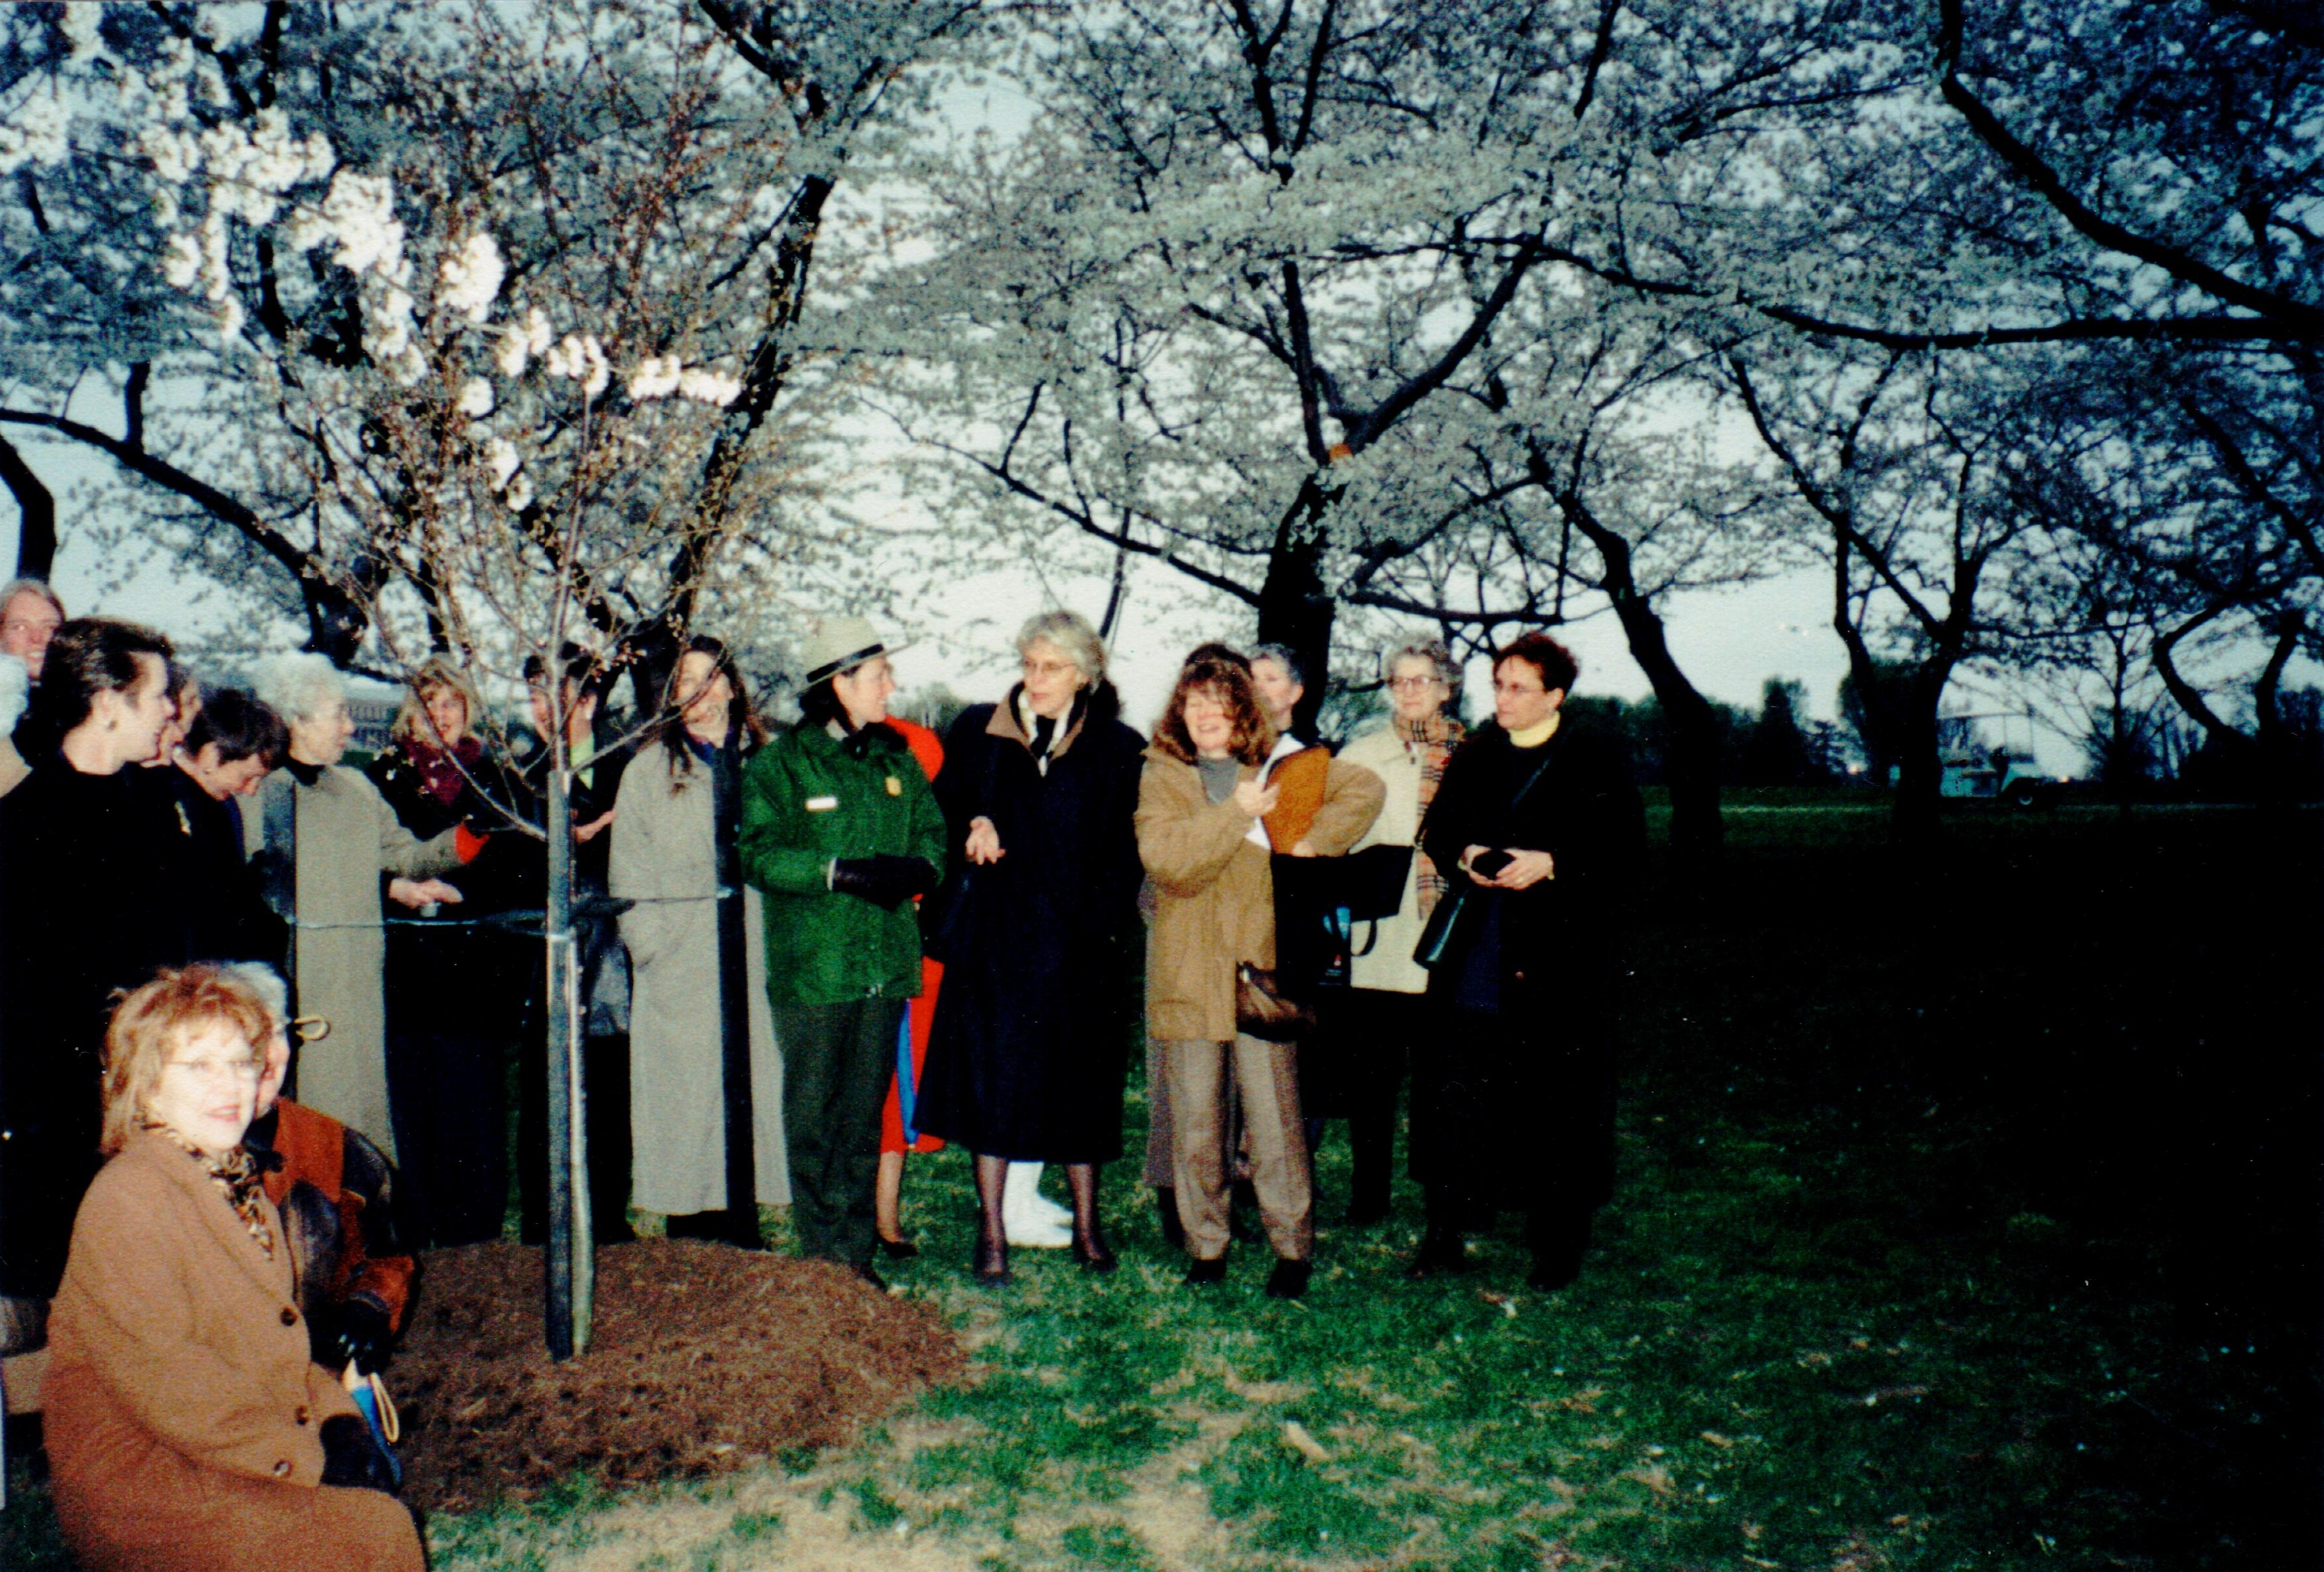 Planting cherry tree in Washington DC 2001 cropped